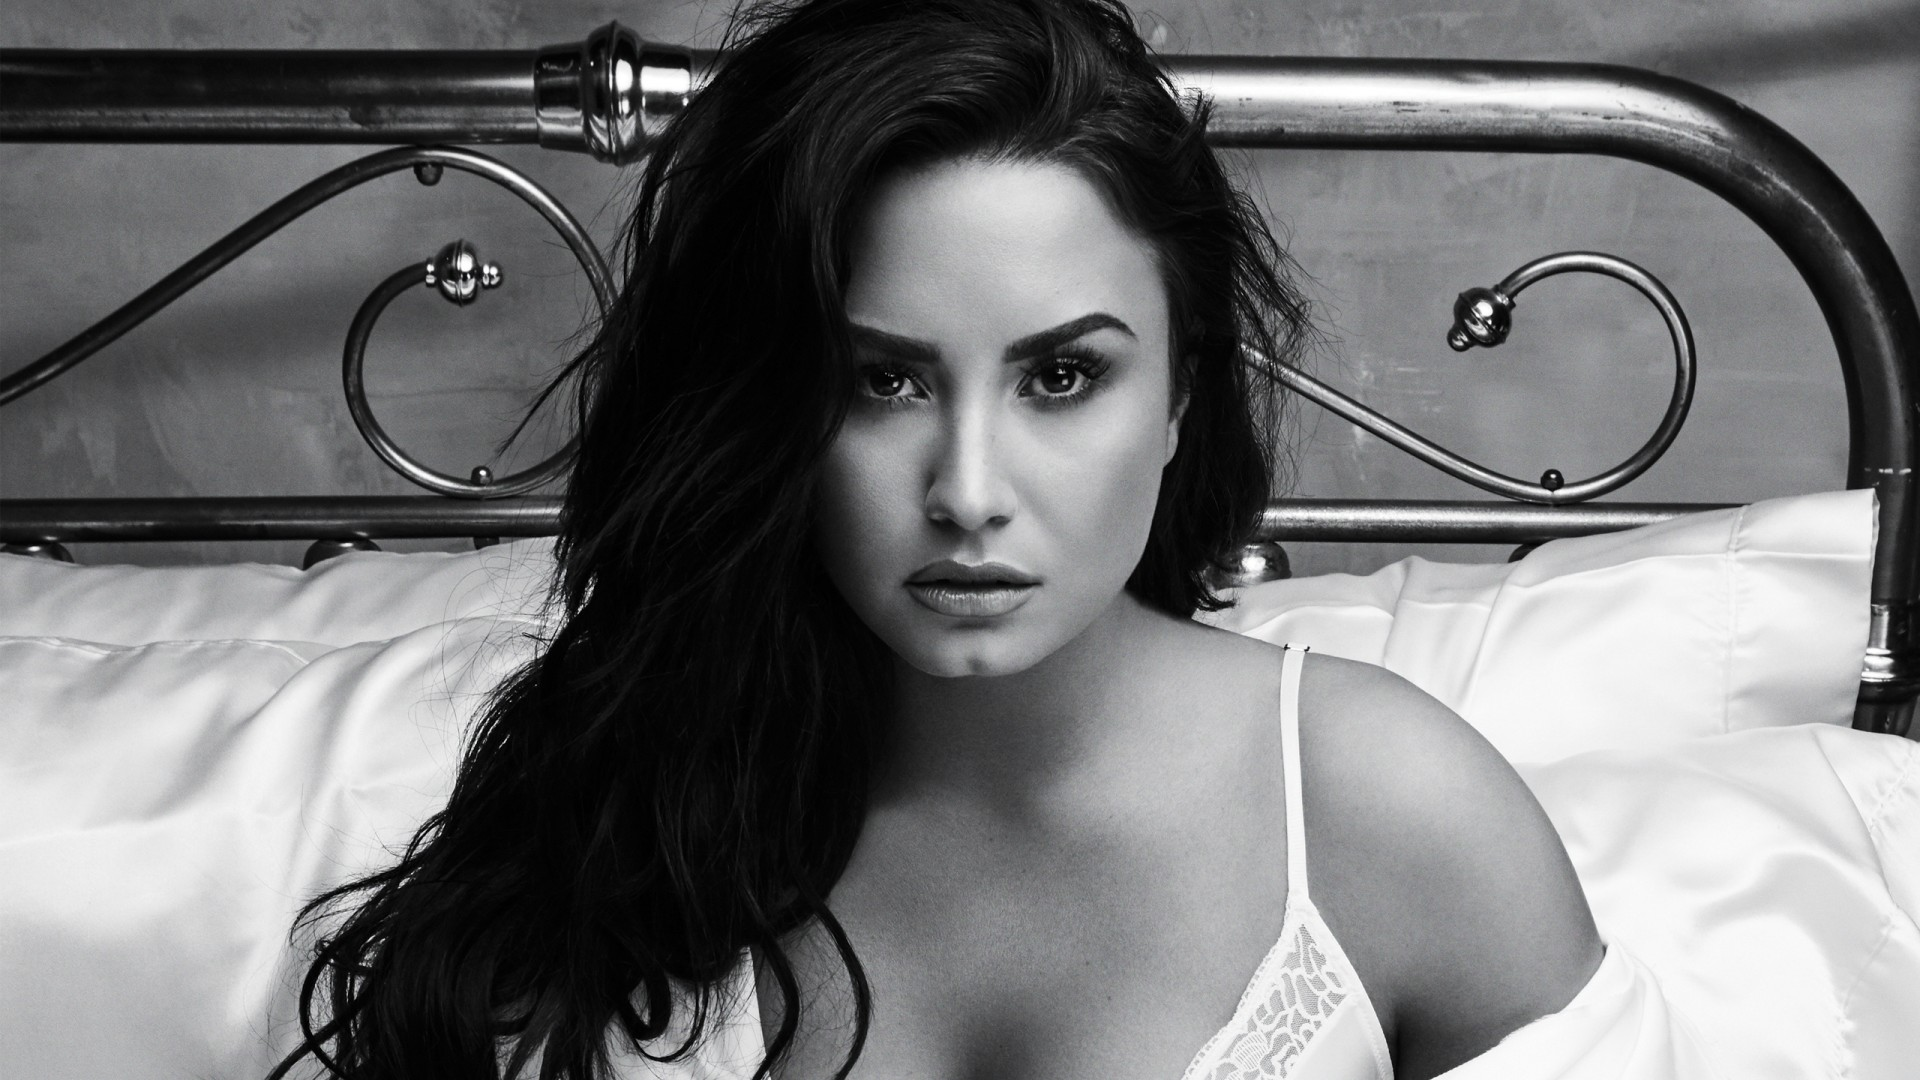 Demi Lovato Hot image wallpaper HD 1920x1080